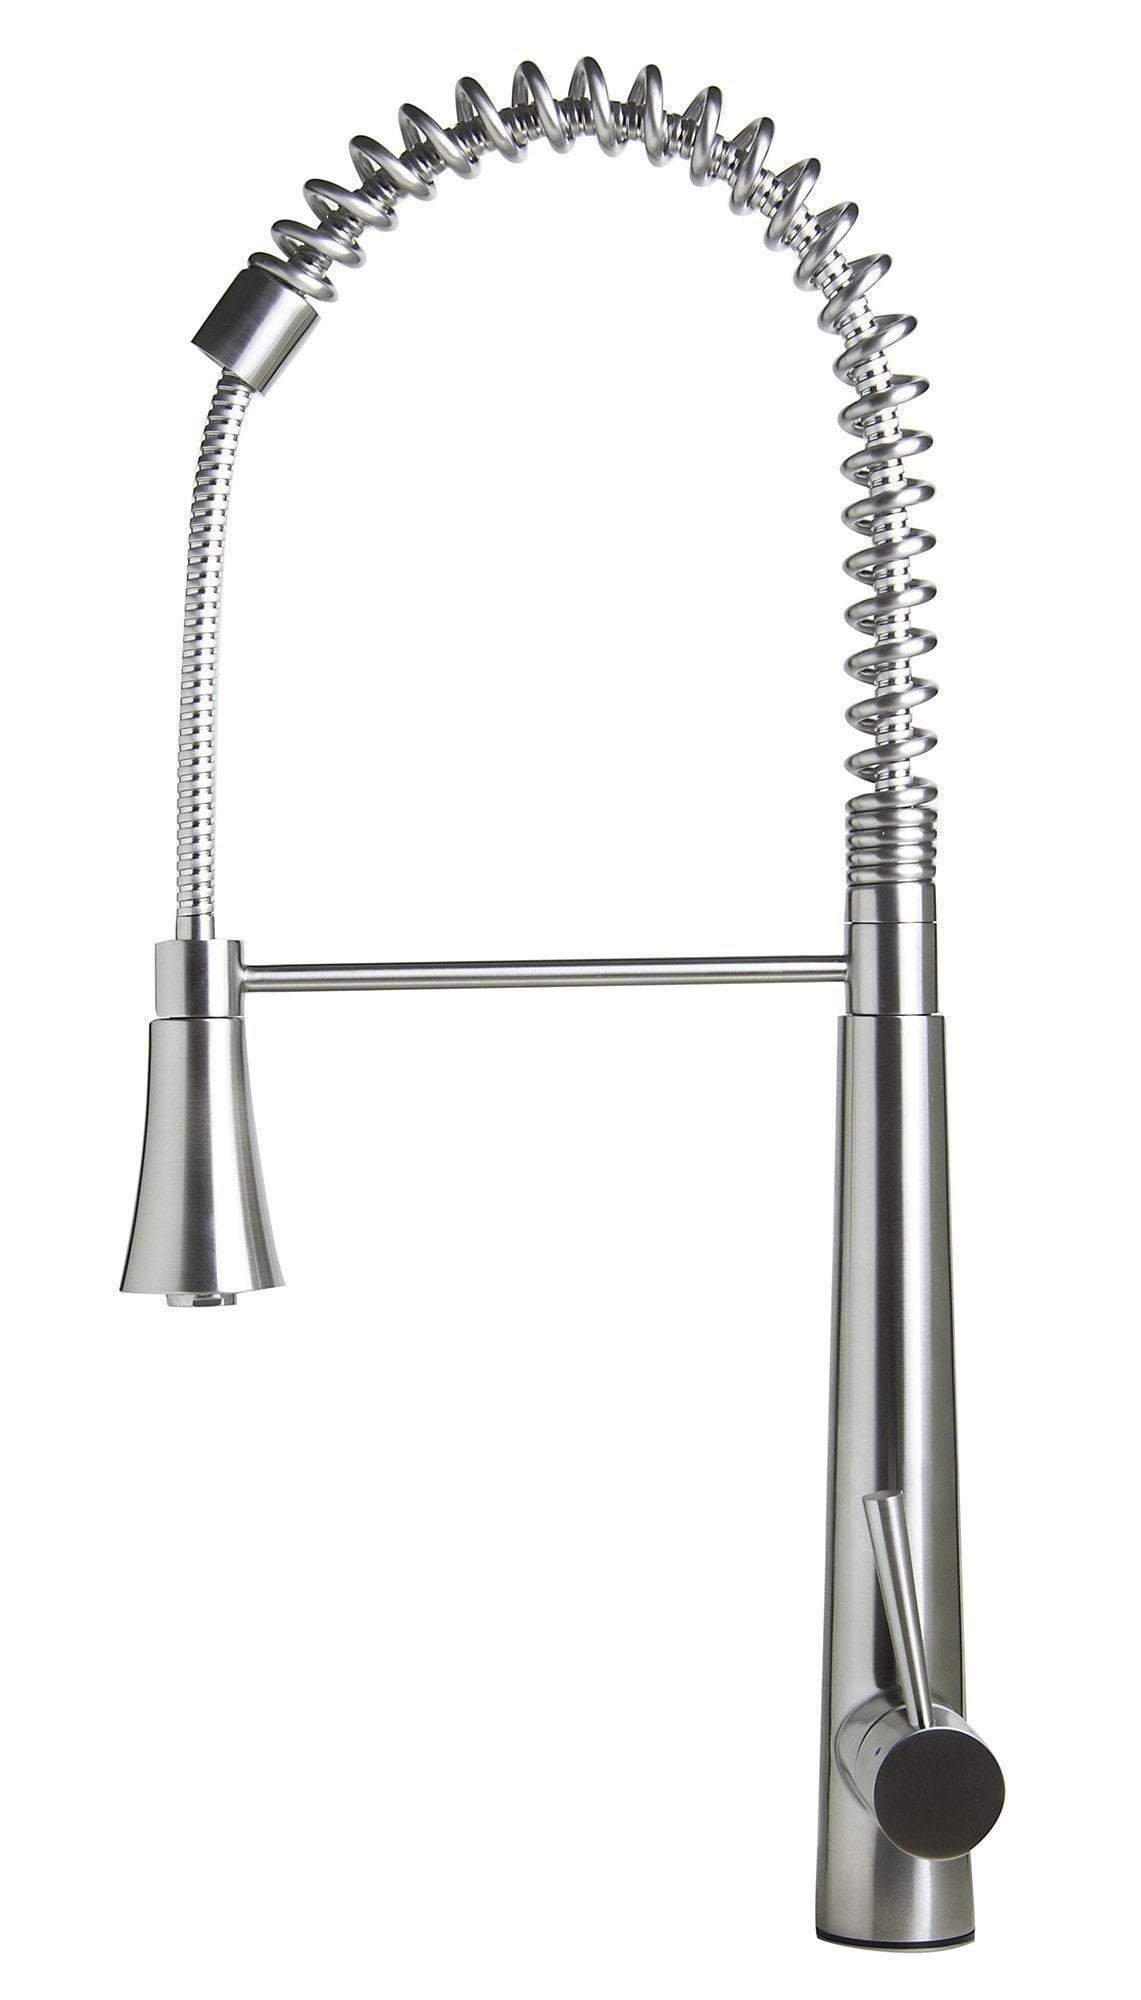 alfi solid stainless steel commercial spring kitchen faucet with pull down shower spray ab2039s